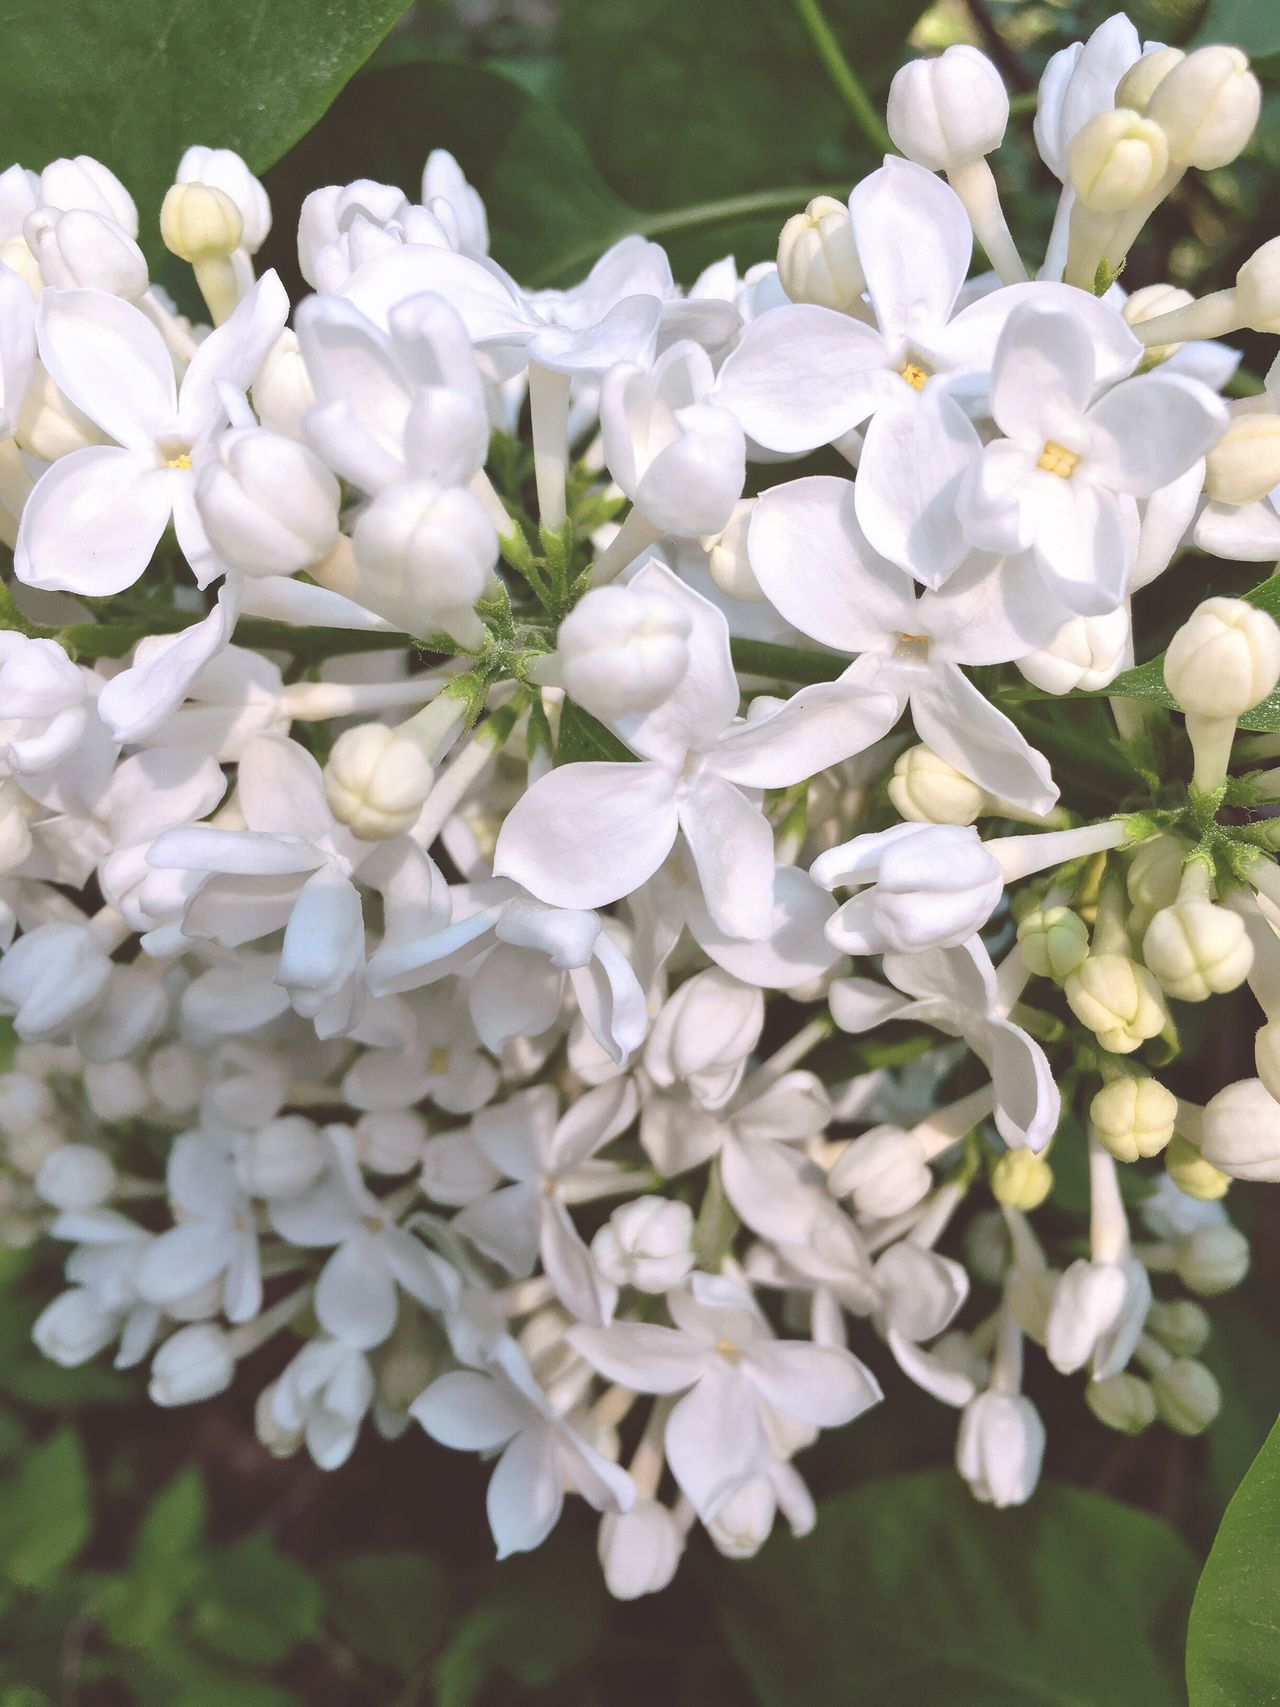 Flower Freshness Nature Beauty In Nature White Color Growth Petal Blooming Close-up Fragility Springtime Day Flower Head Outdoors Plant No People